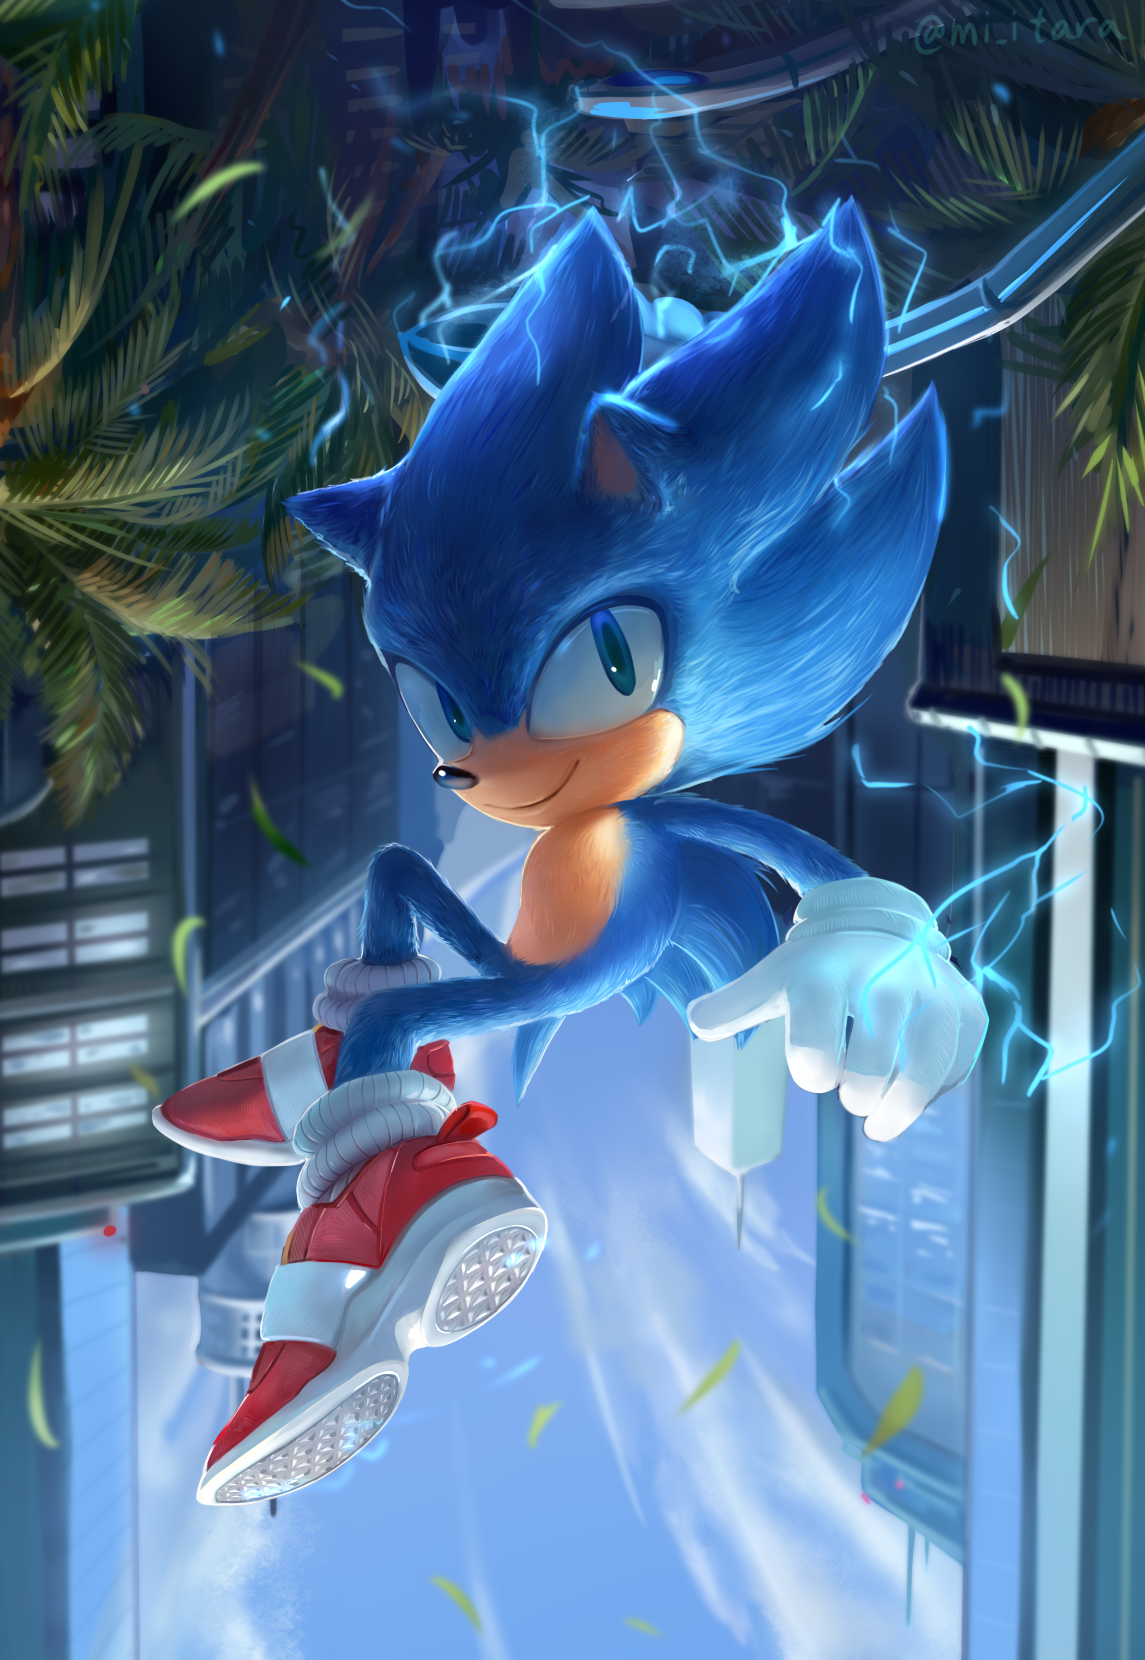 Sonic By Miitara On Deviantart